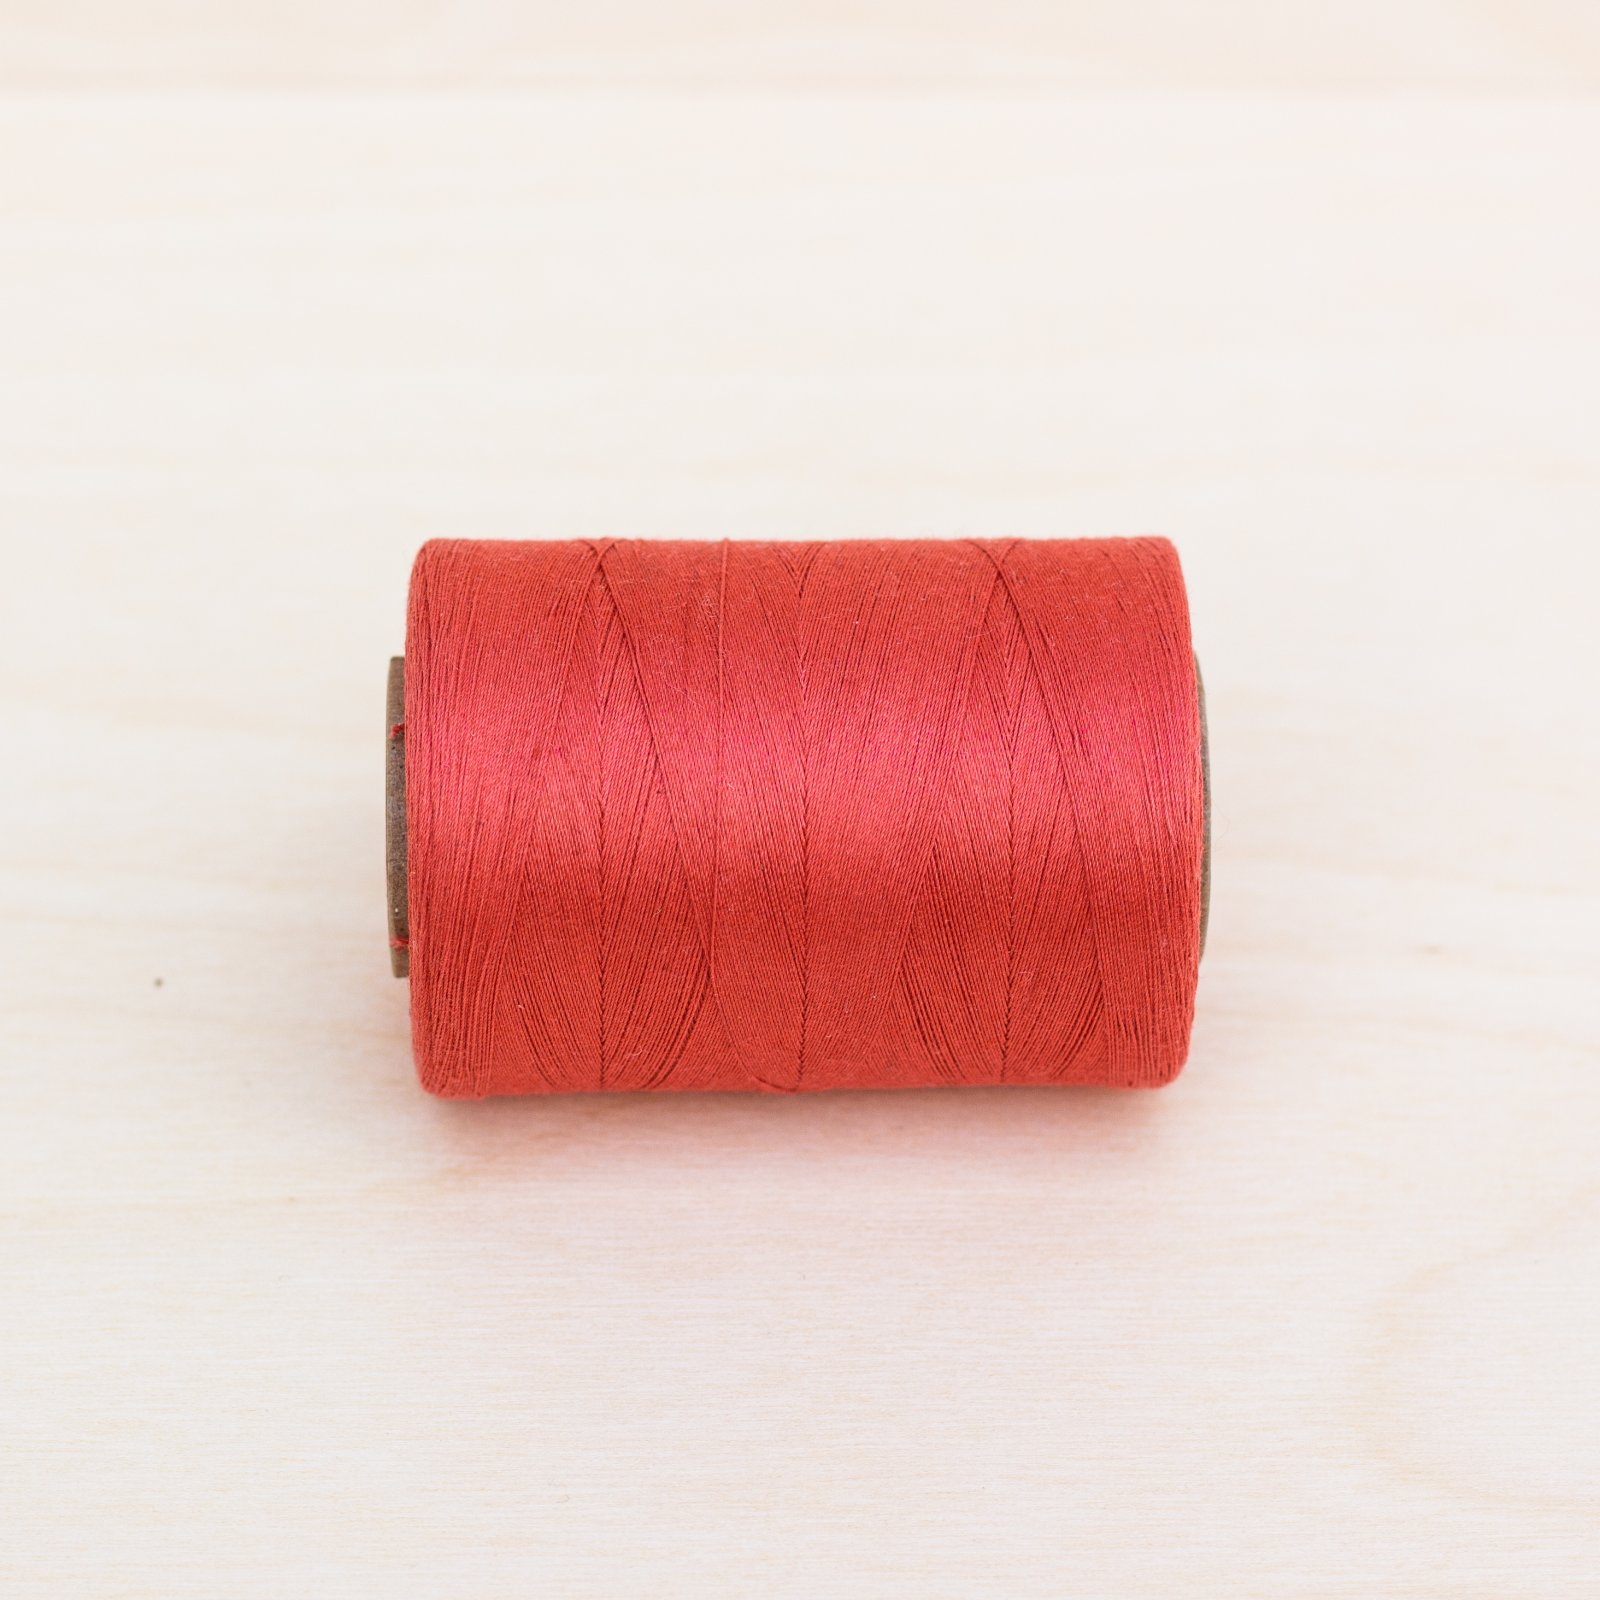 128A - Atom Red Quilting Thread 1200yd